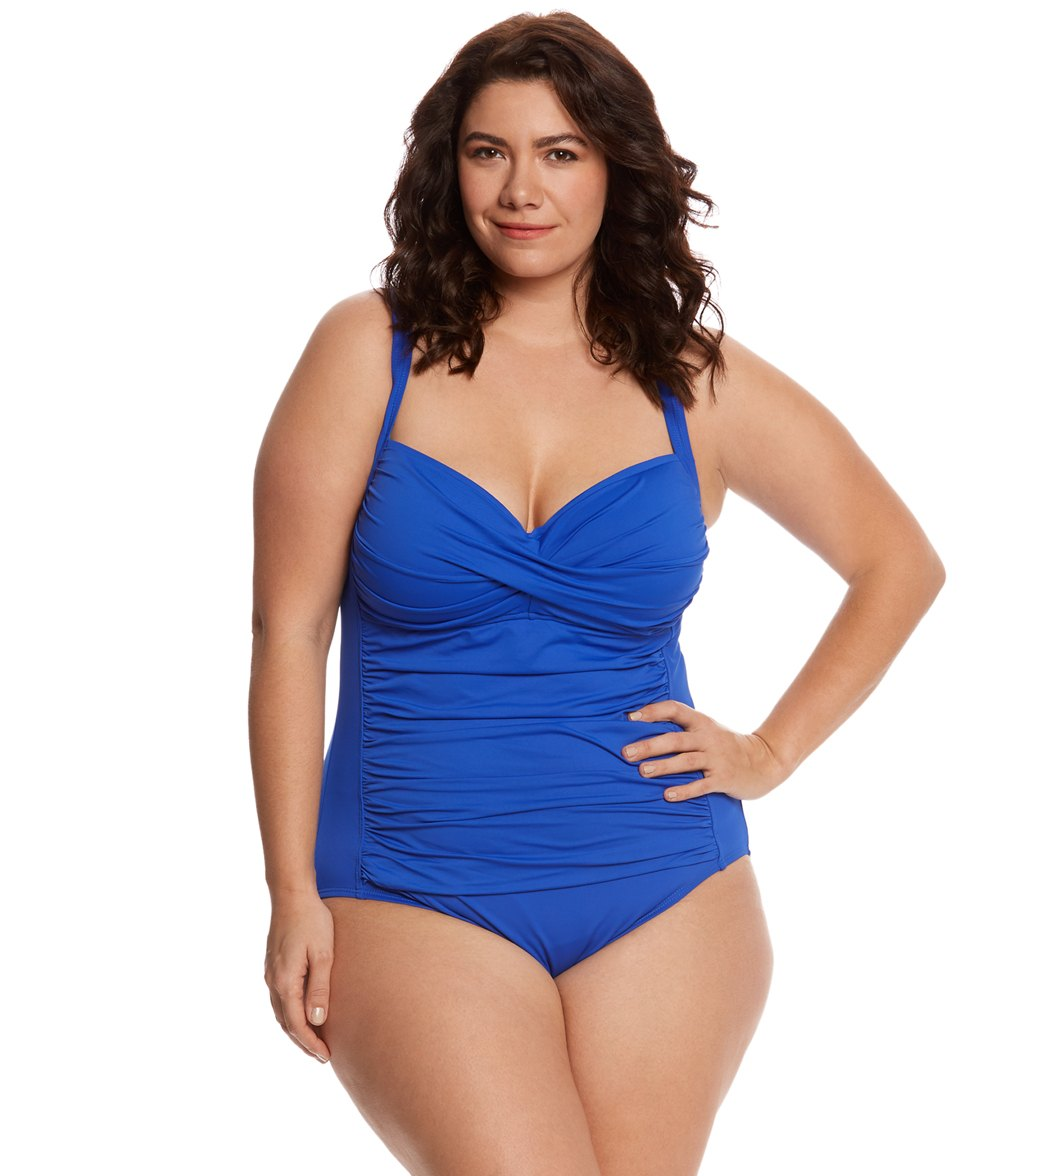 48e335ea27052 ... La Blanca Plus Size Island Goddess Sweetheart One Piece Swimsuit Play  Video. MODEL MEASUREMENTS